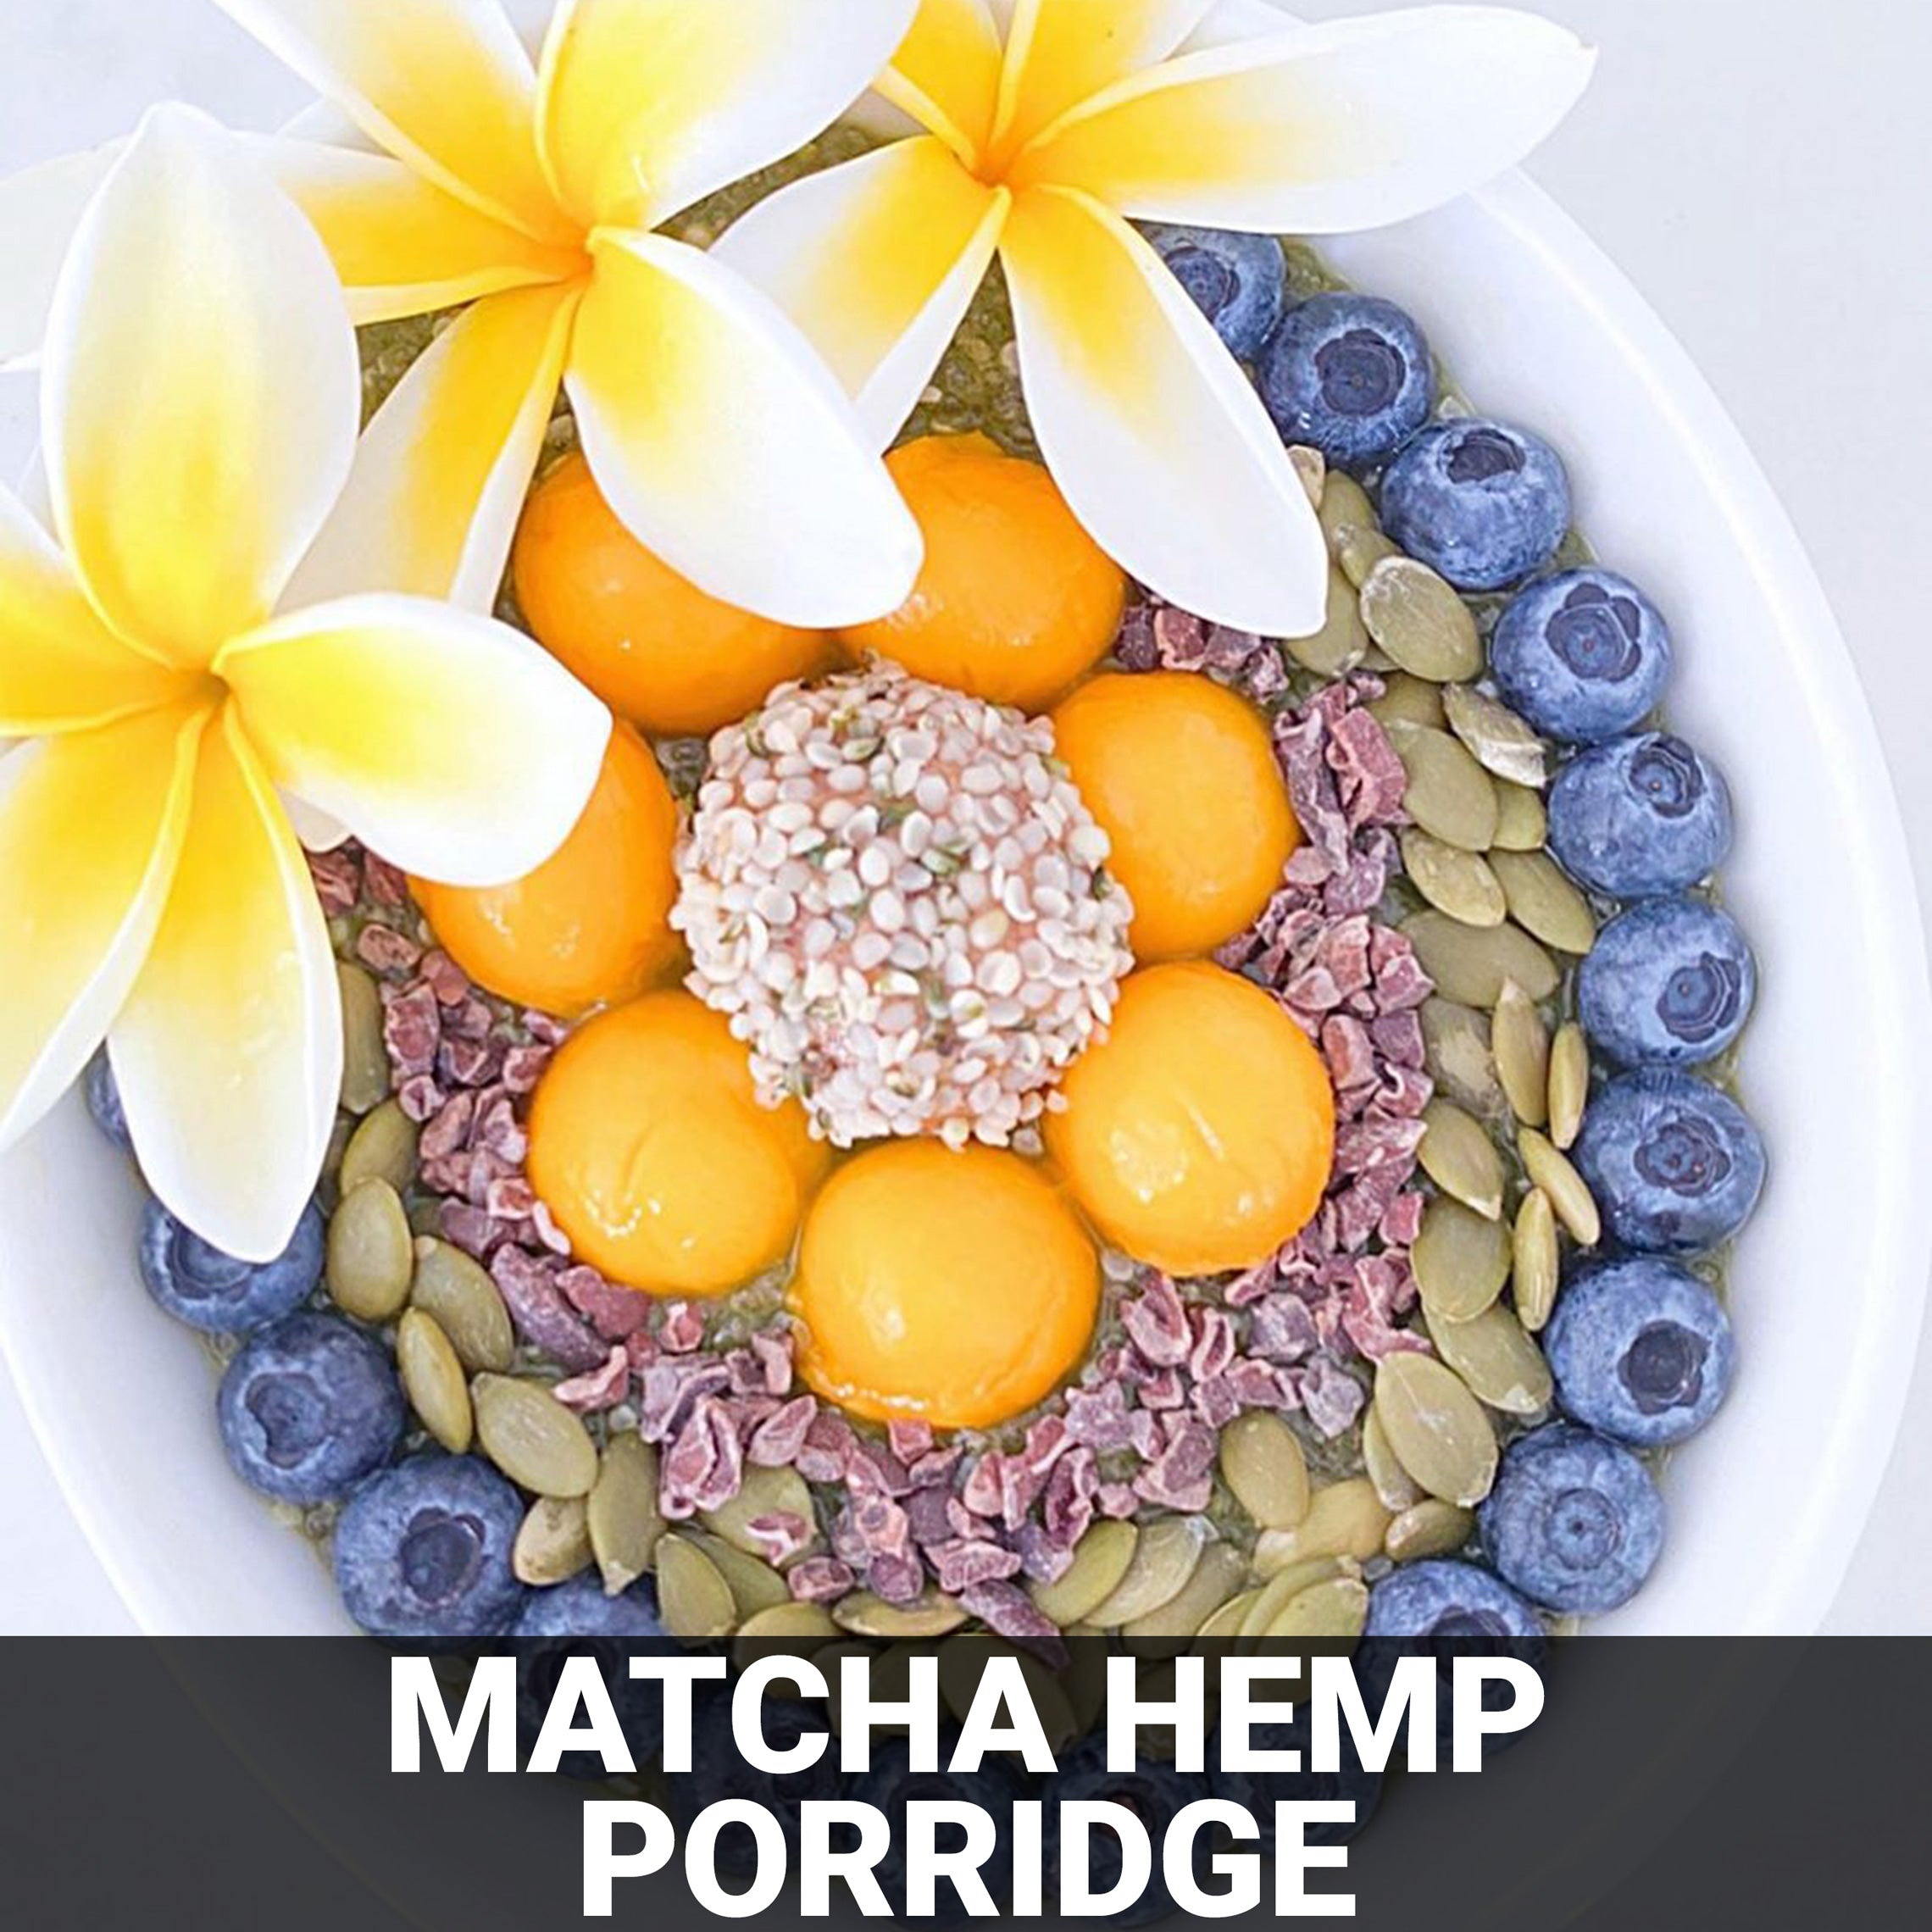 Matcha Hemp Porridge Recipe - Foods Alive